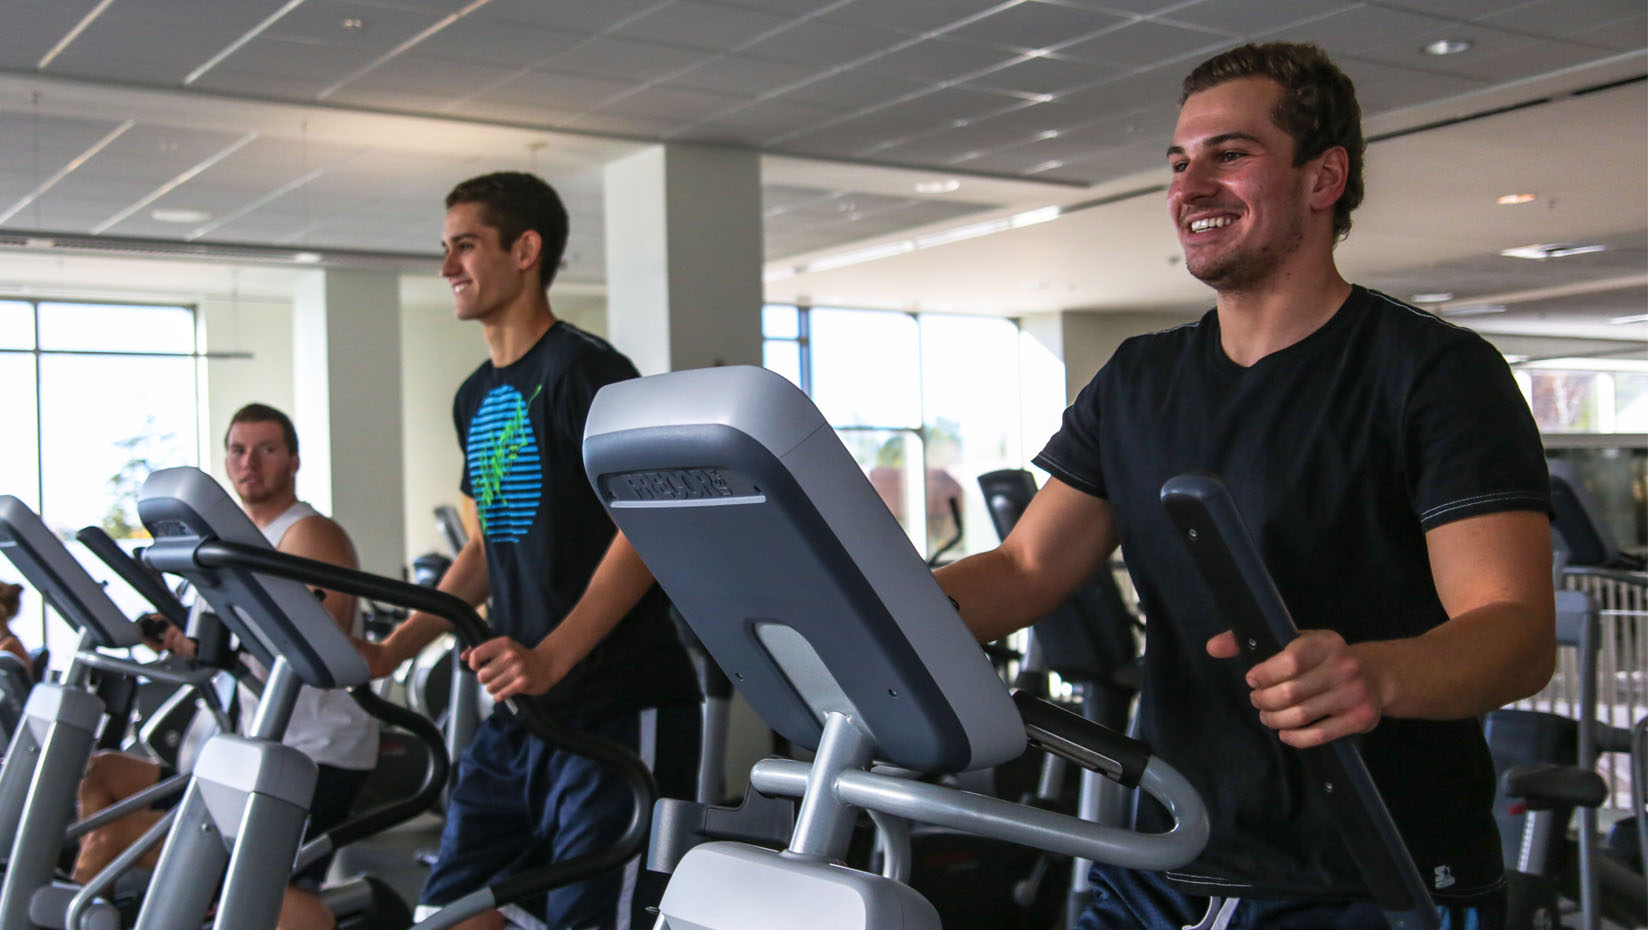 is working out in a group the right choice for you